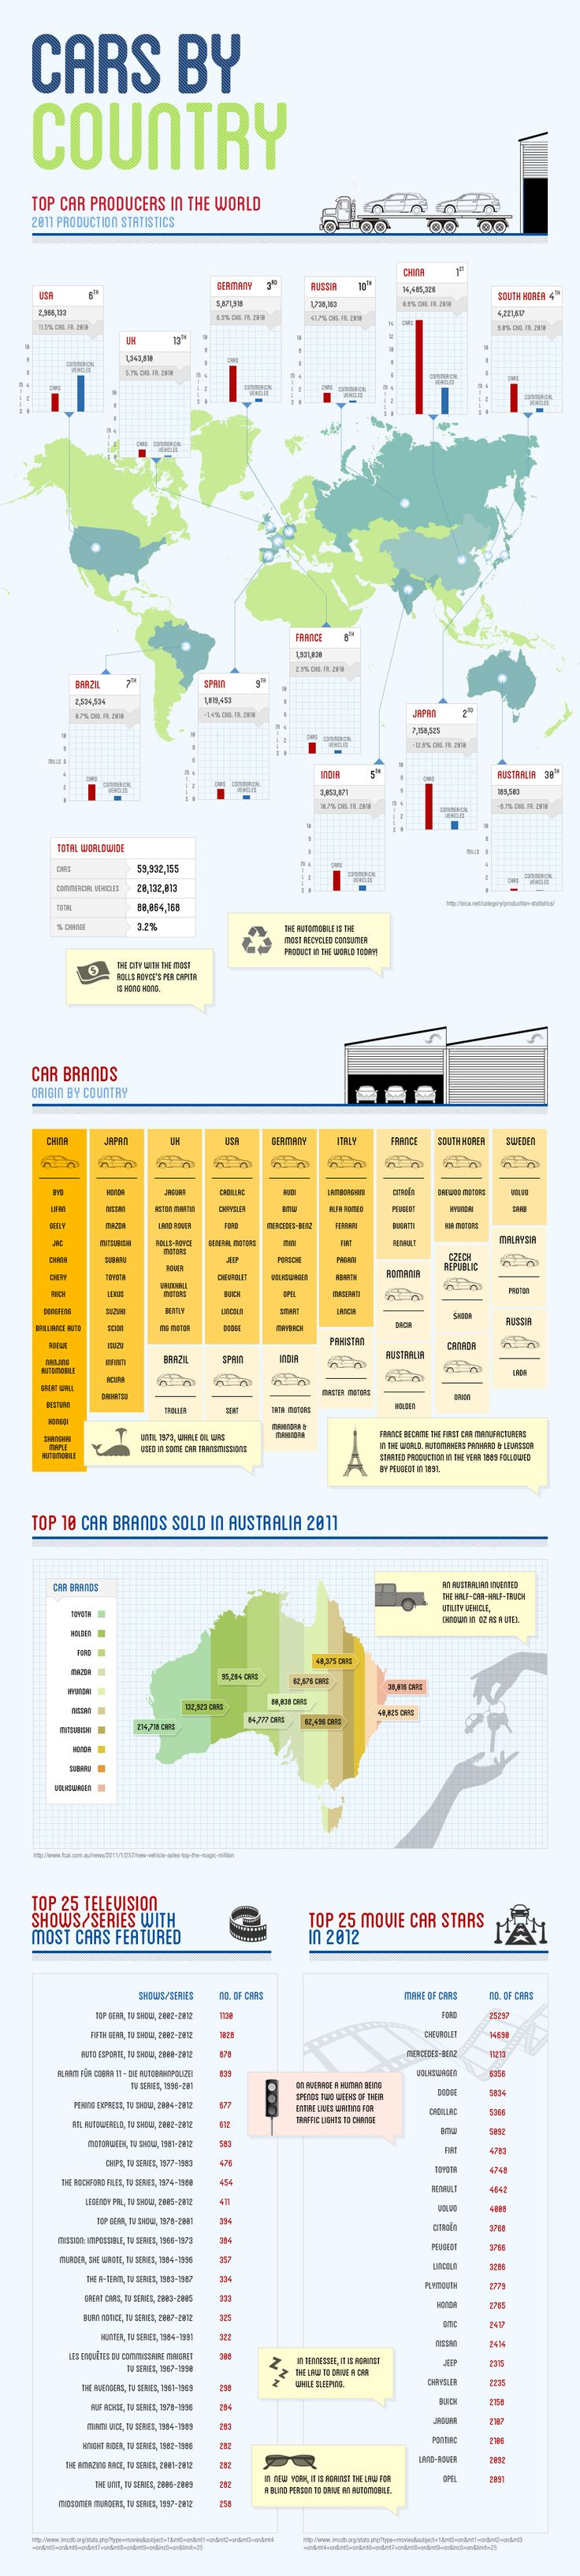 Cars By Country [INFOGRAPHIC]